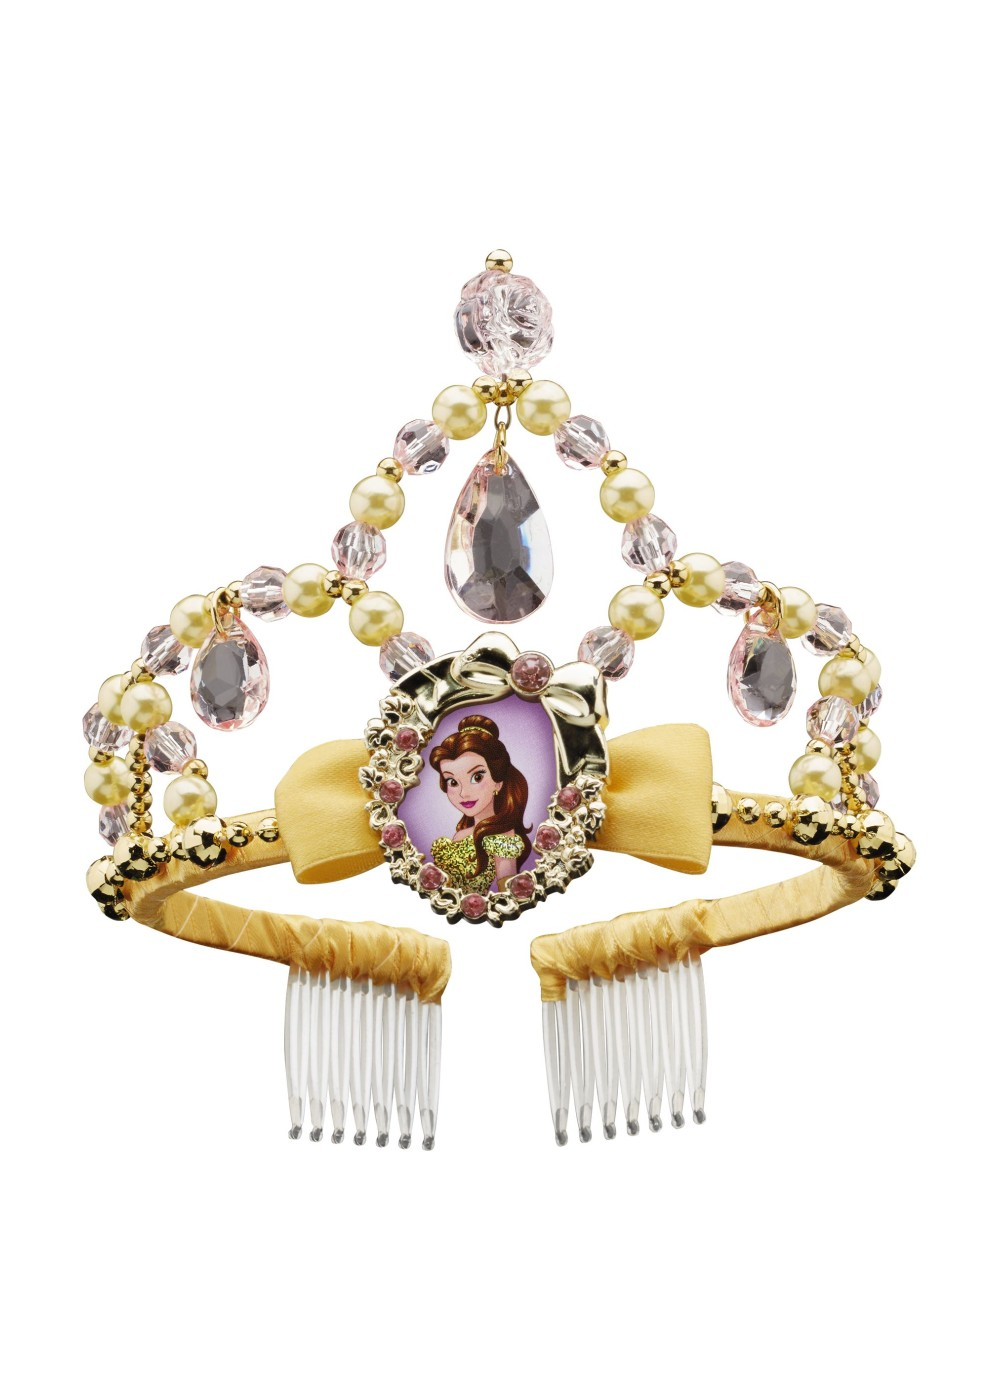 Princess Disney Belle Classic Girls Tiara - Accessories